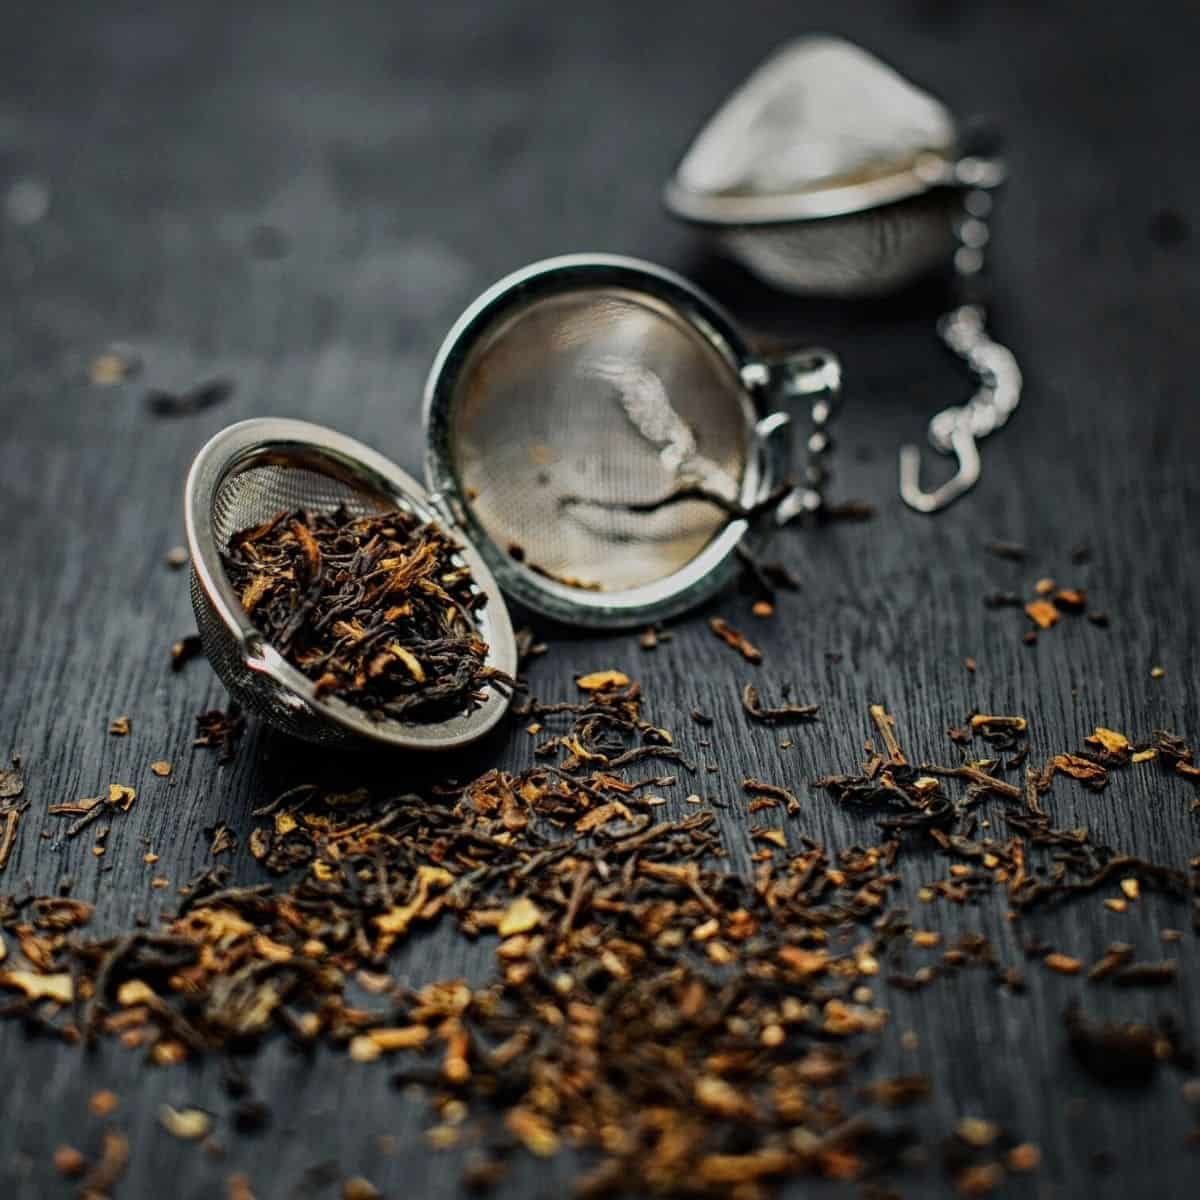 tea strainer with herbs falling out